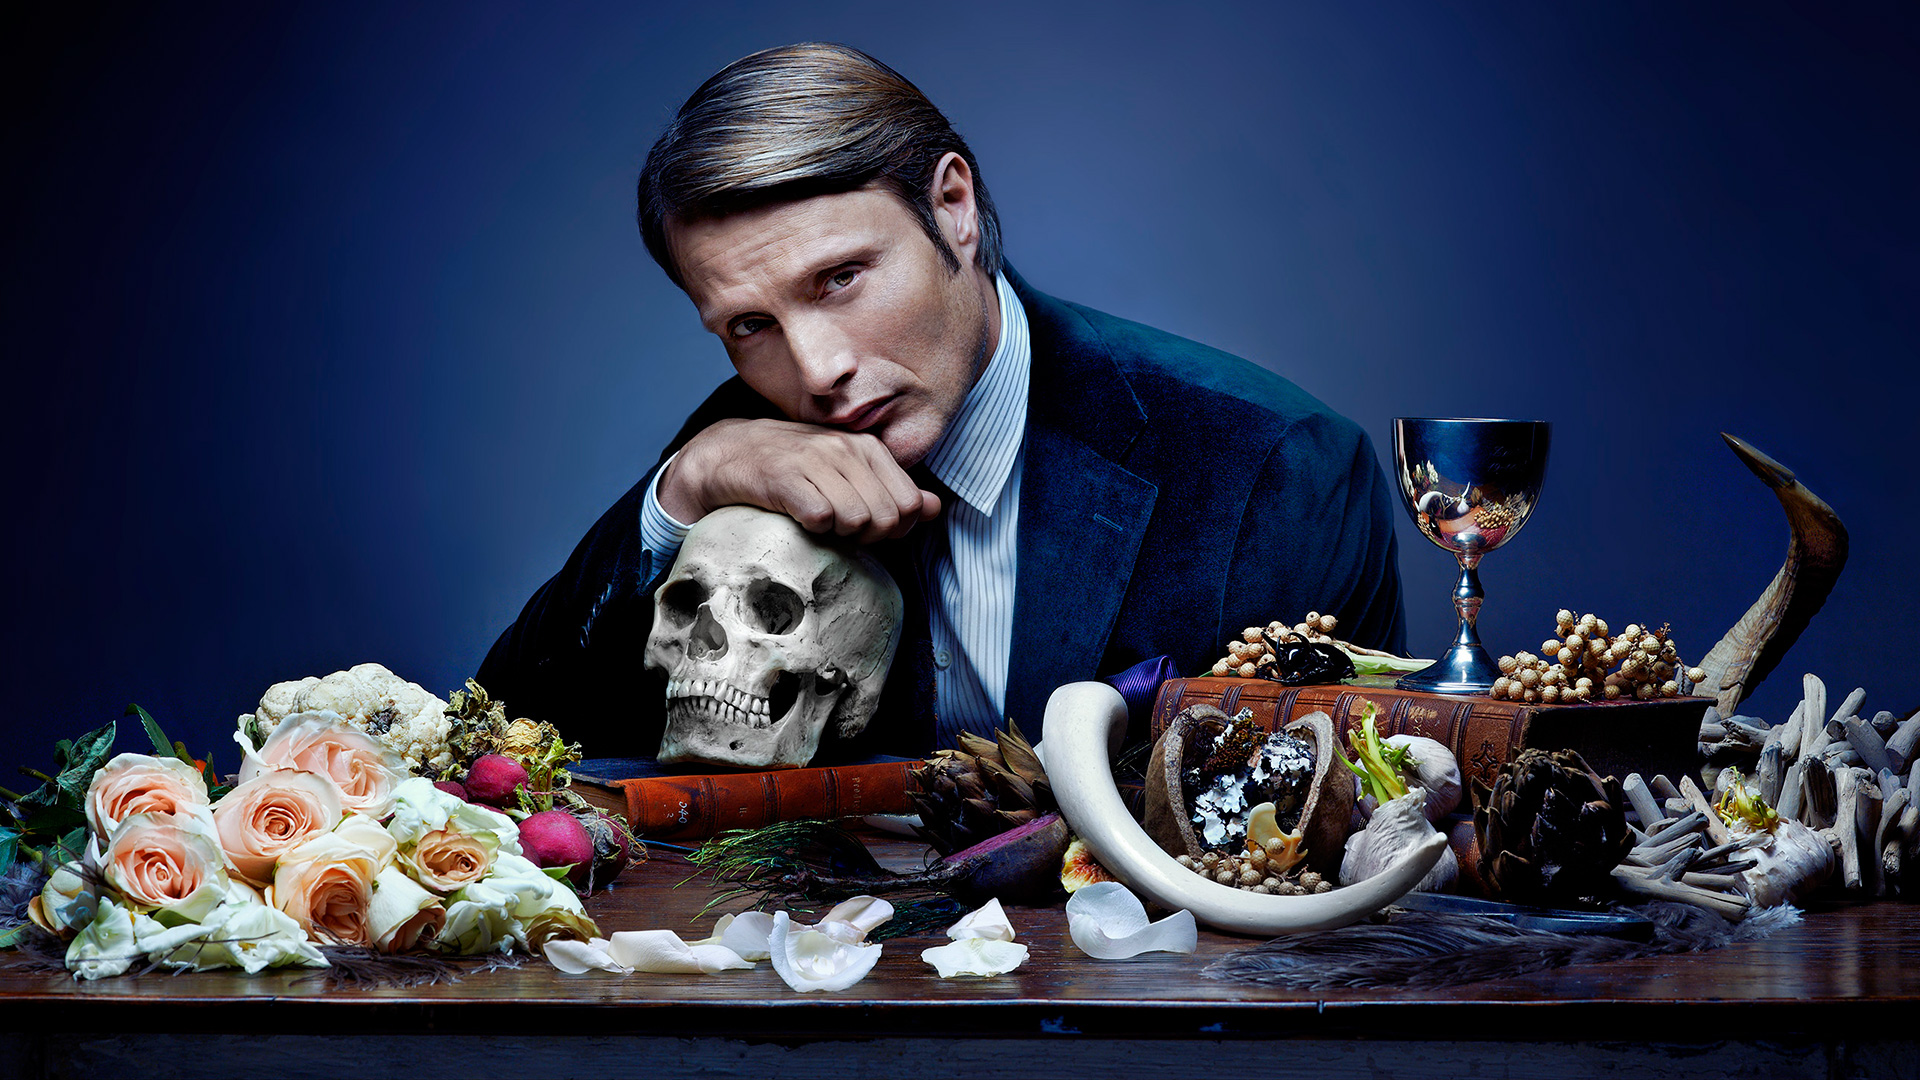 HANNIBAL -- Season: 1 -- Pictured: Mads Mikkelsen as Dr. Hannibal Lecter -- Photo Credit: © Robert Trachtenberg/NBC.